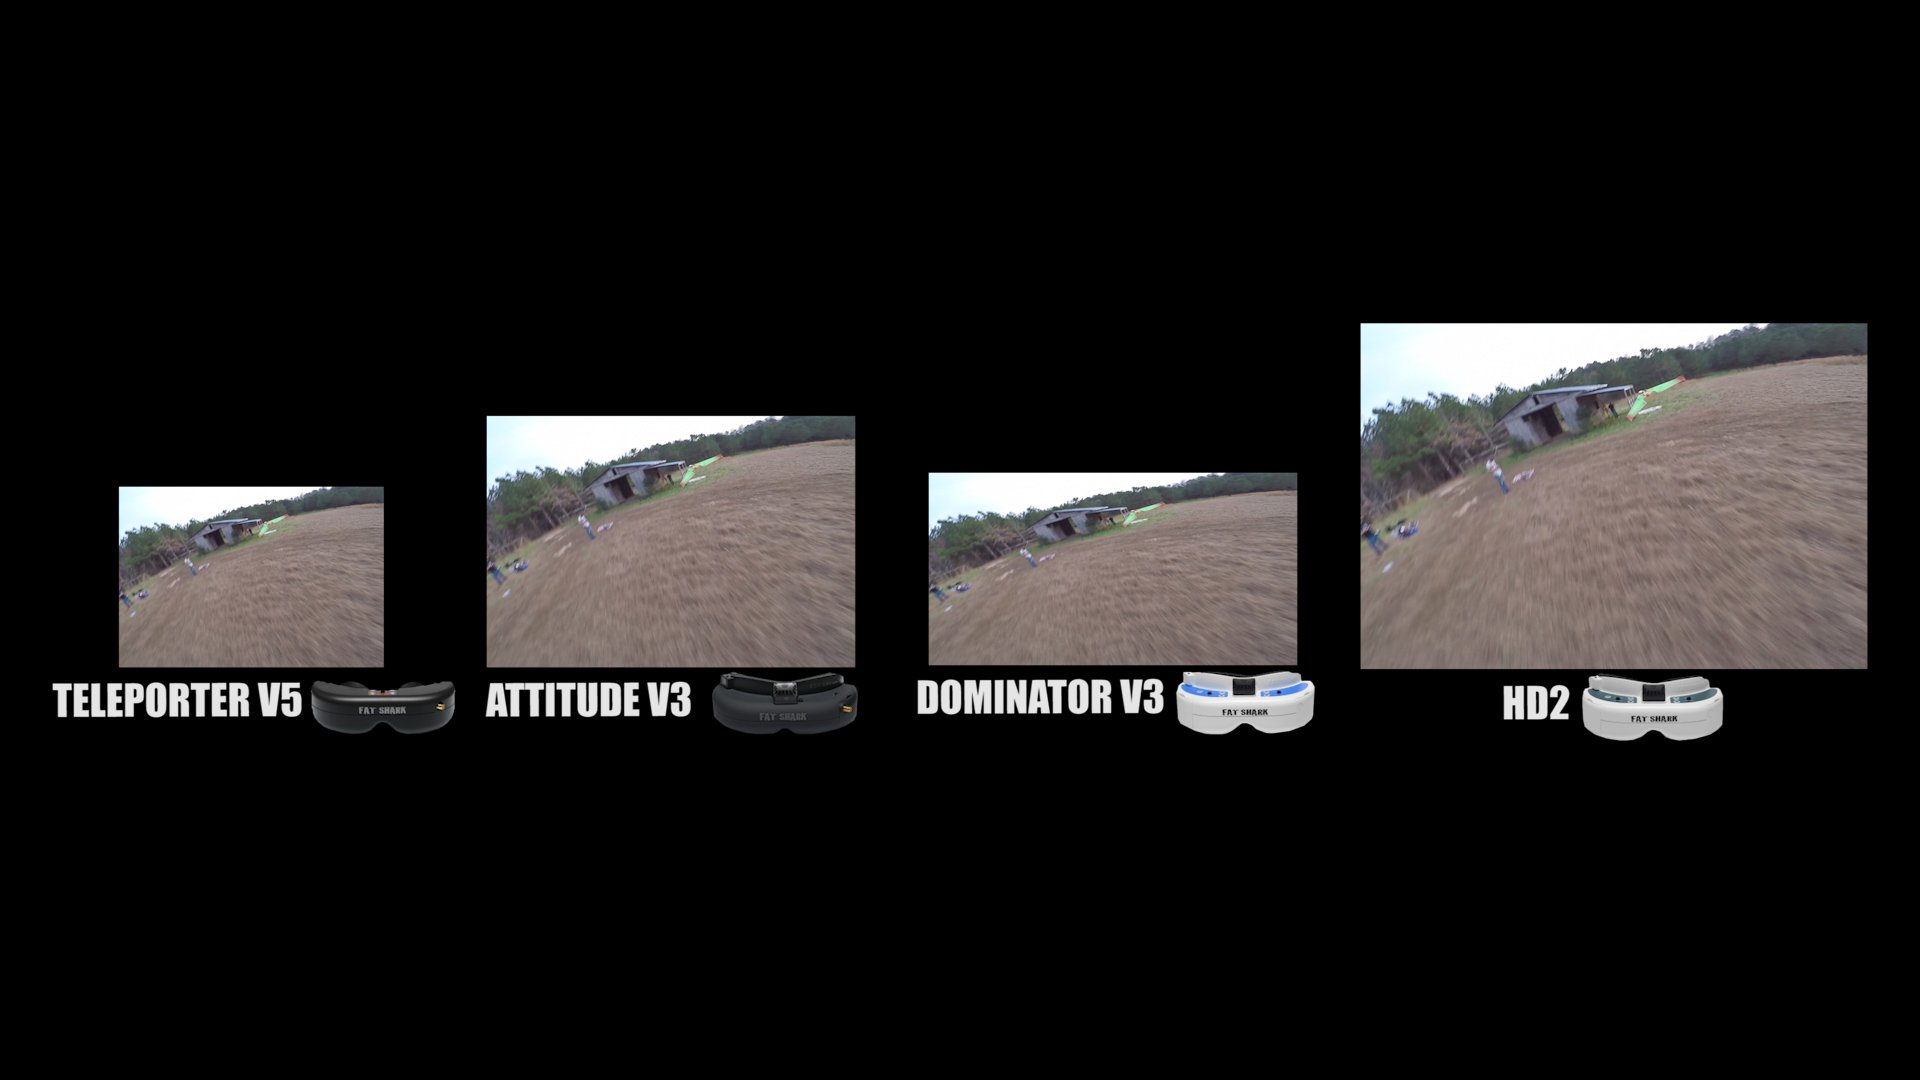 fpv flying with Fatshark Dominator Hd2 Or Dominator V3 on The Best Drones Of 2017 besides 136635 furthermore Flitetest Podcast besides Dji Released Its New Quadcopter Phantom 2 besides Afl 2016 Final The Results.